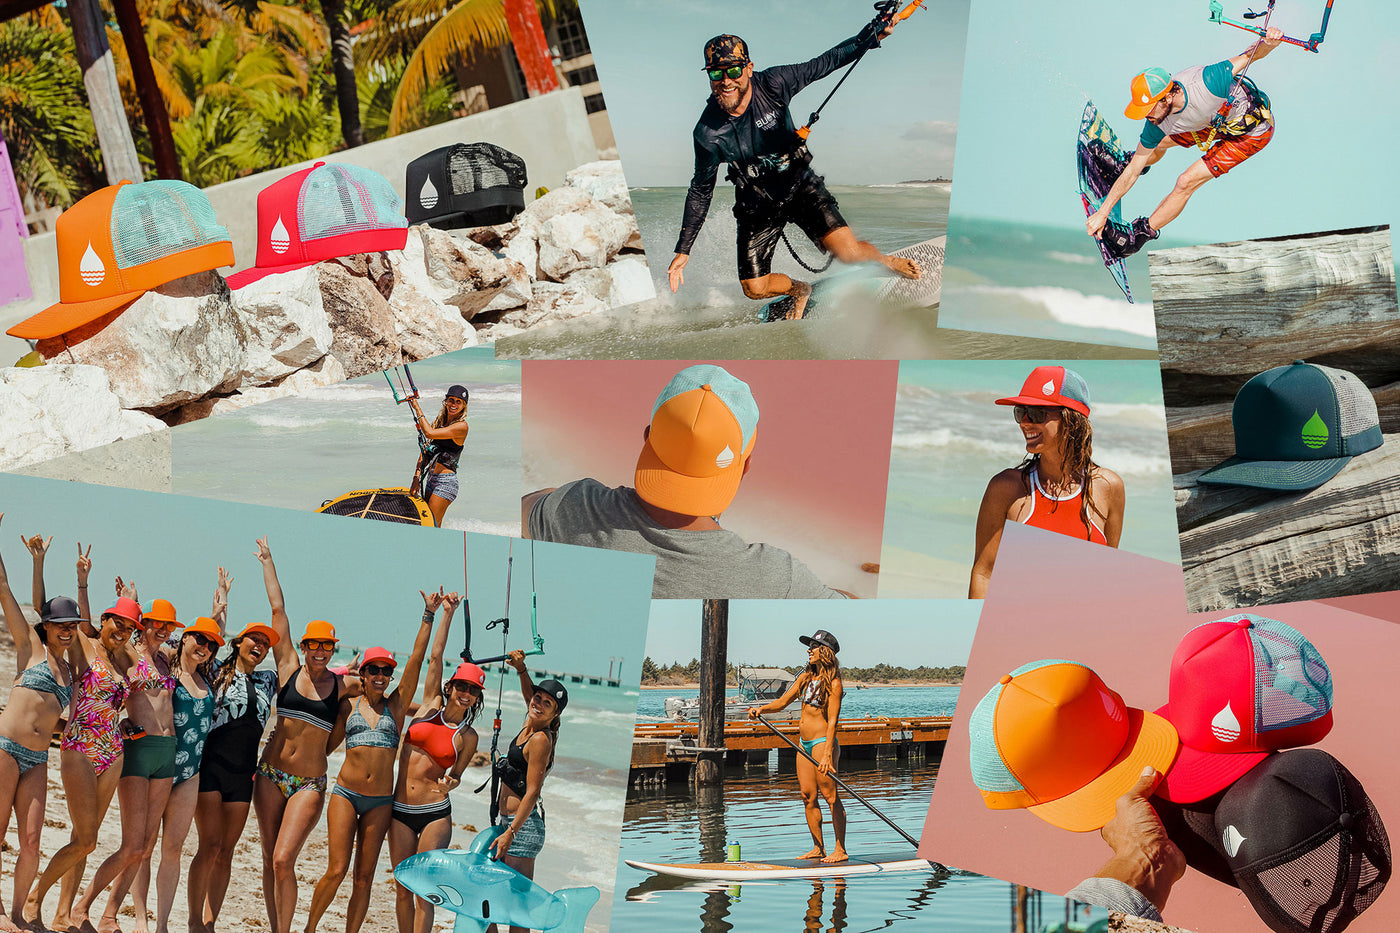 BUOY WEAR photo collage featuring the floating, waterproof headgear, and water sports athletes and passionates wearing them.